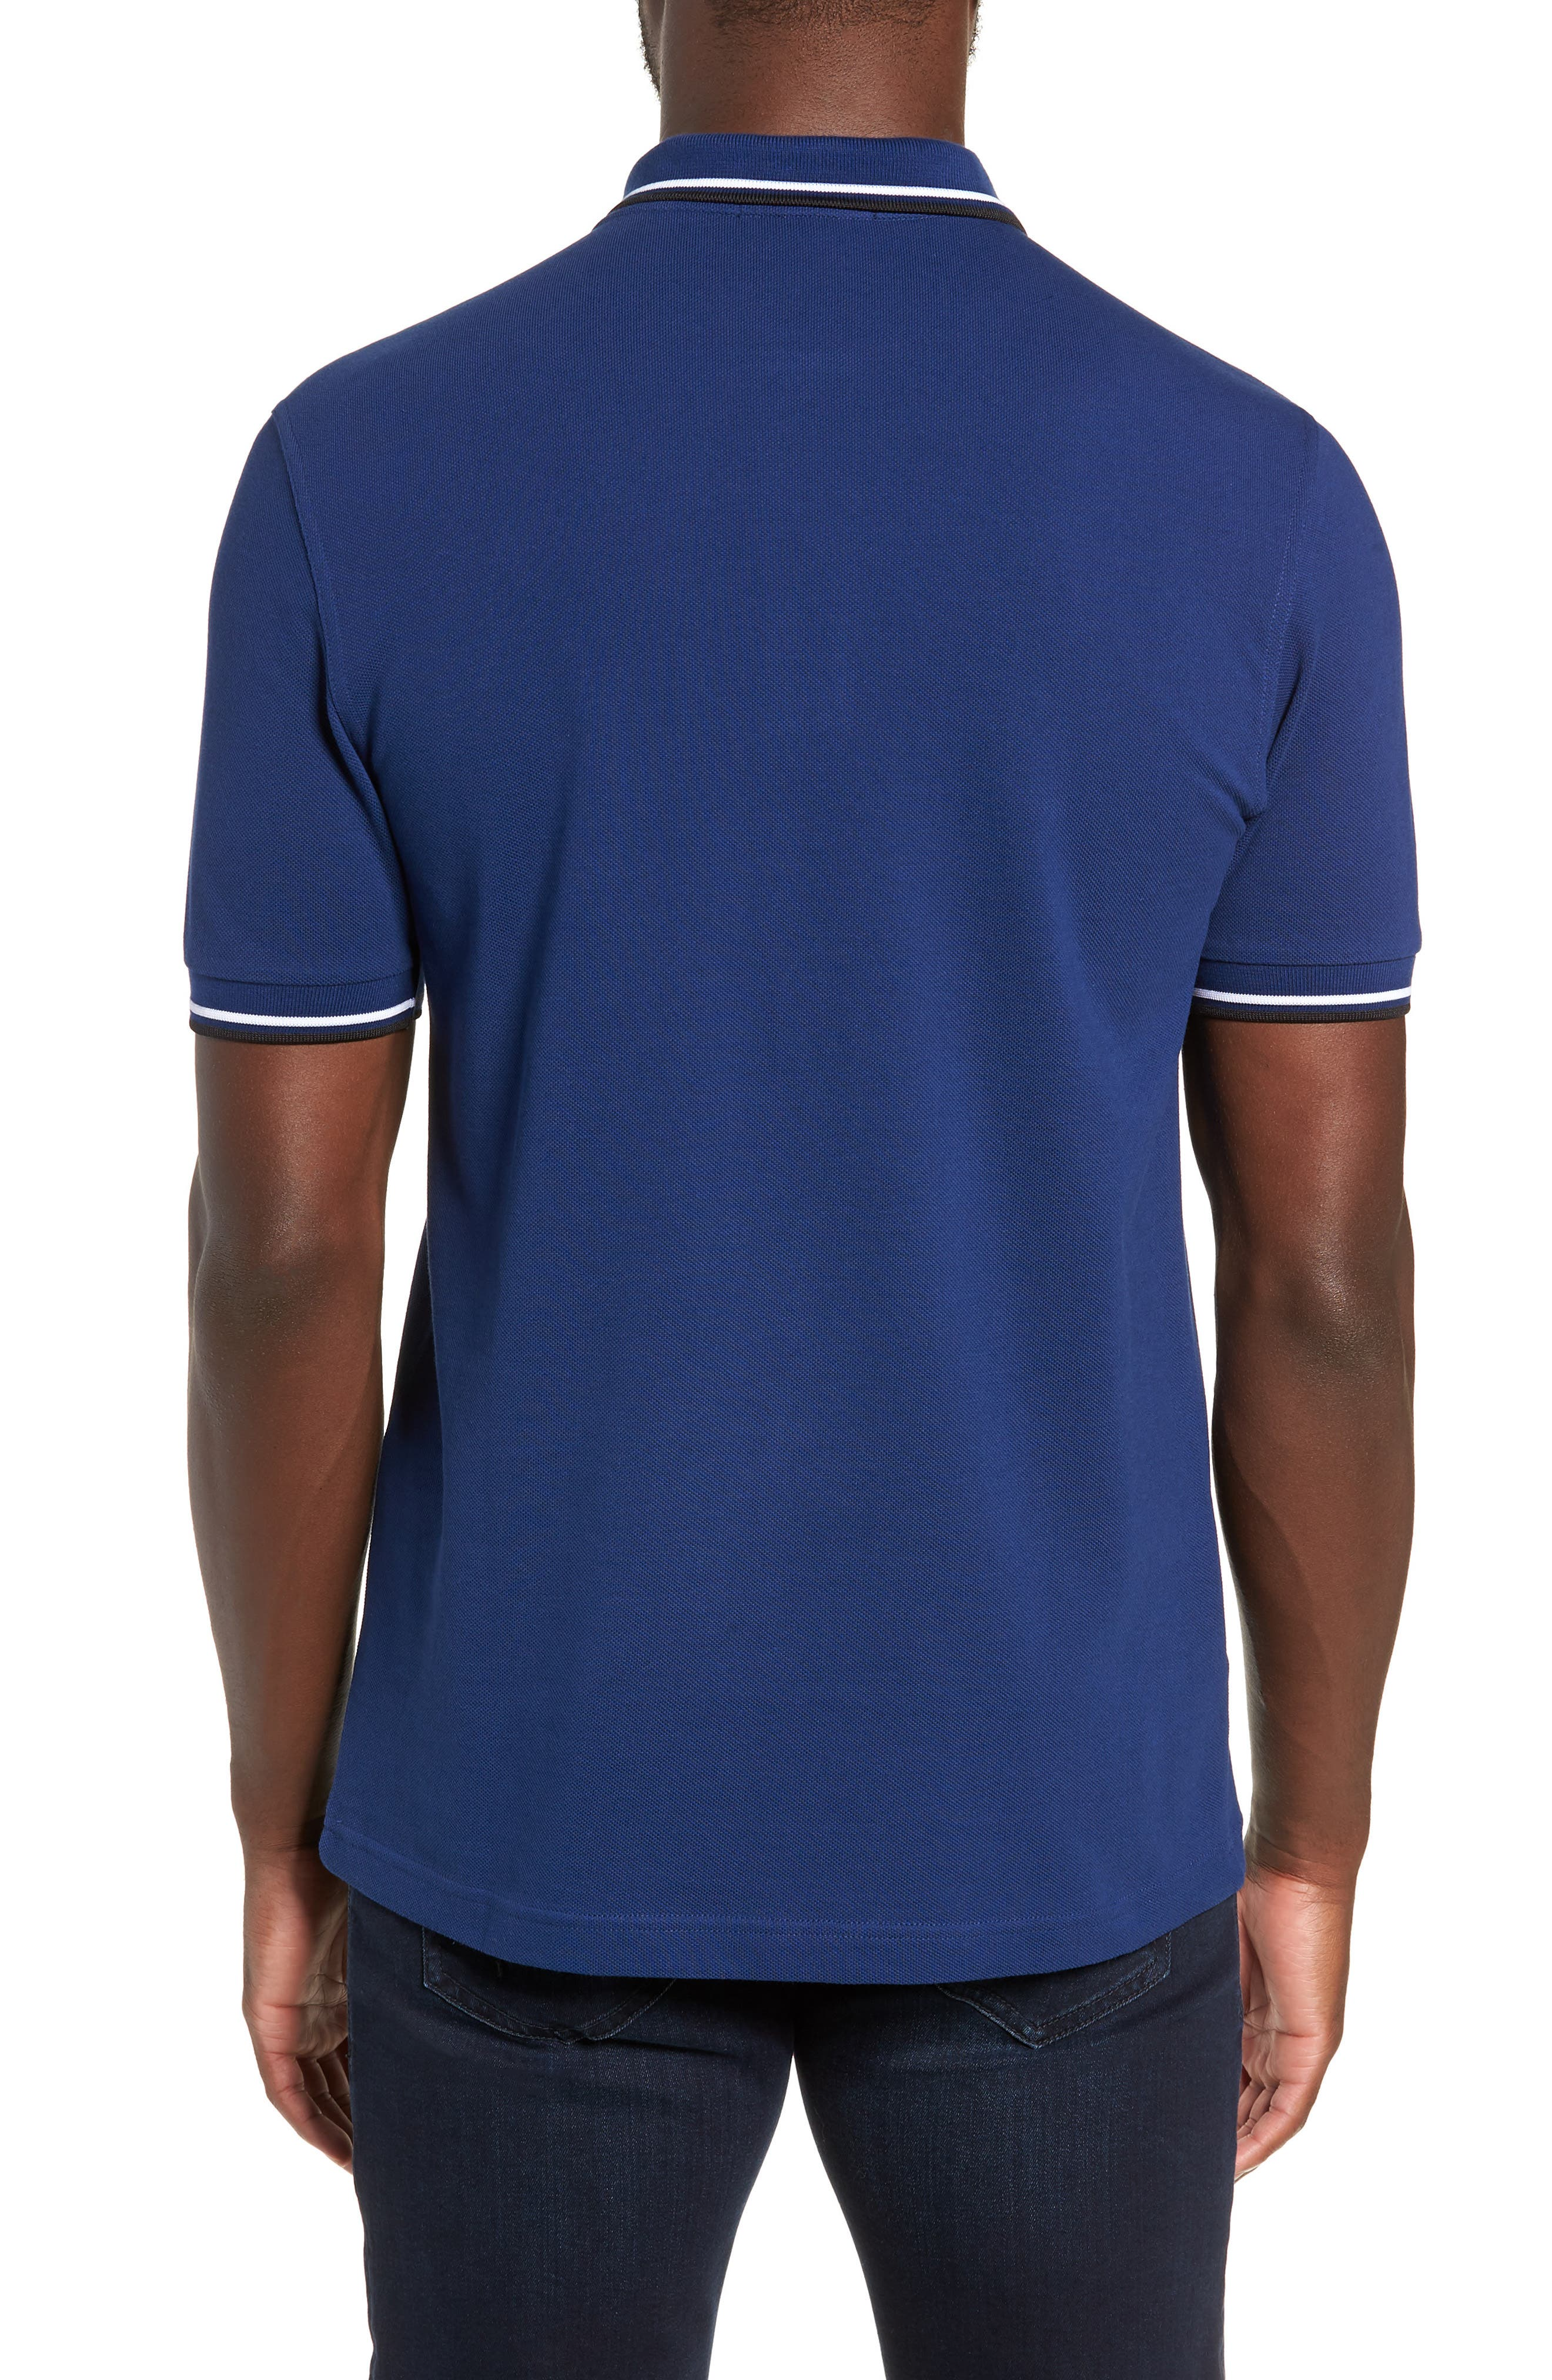 Extra Trim Fit Twin Tipped Piqué Polo,                             Alternate thumbnail 2, color,                             MEDIEVAL BLUE / WHITE / BLACK